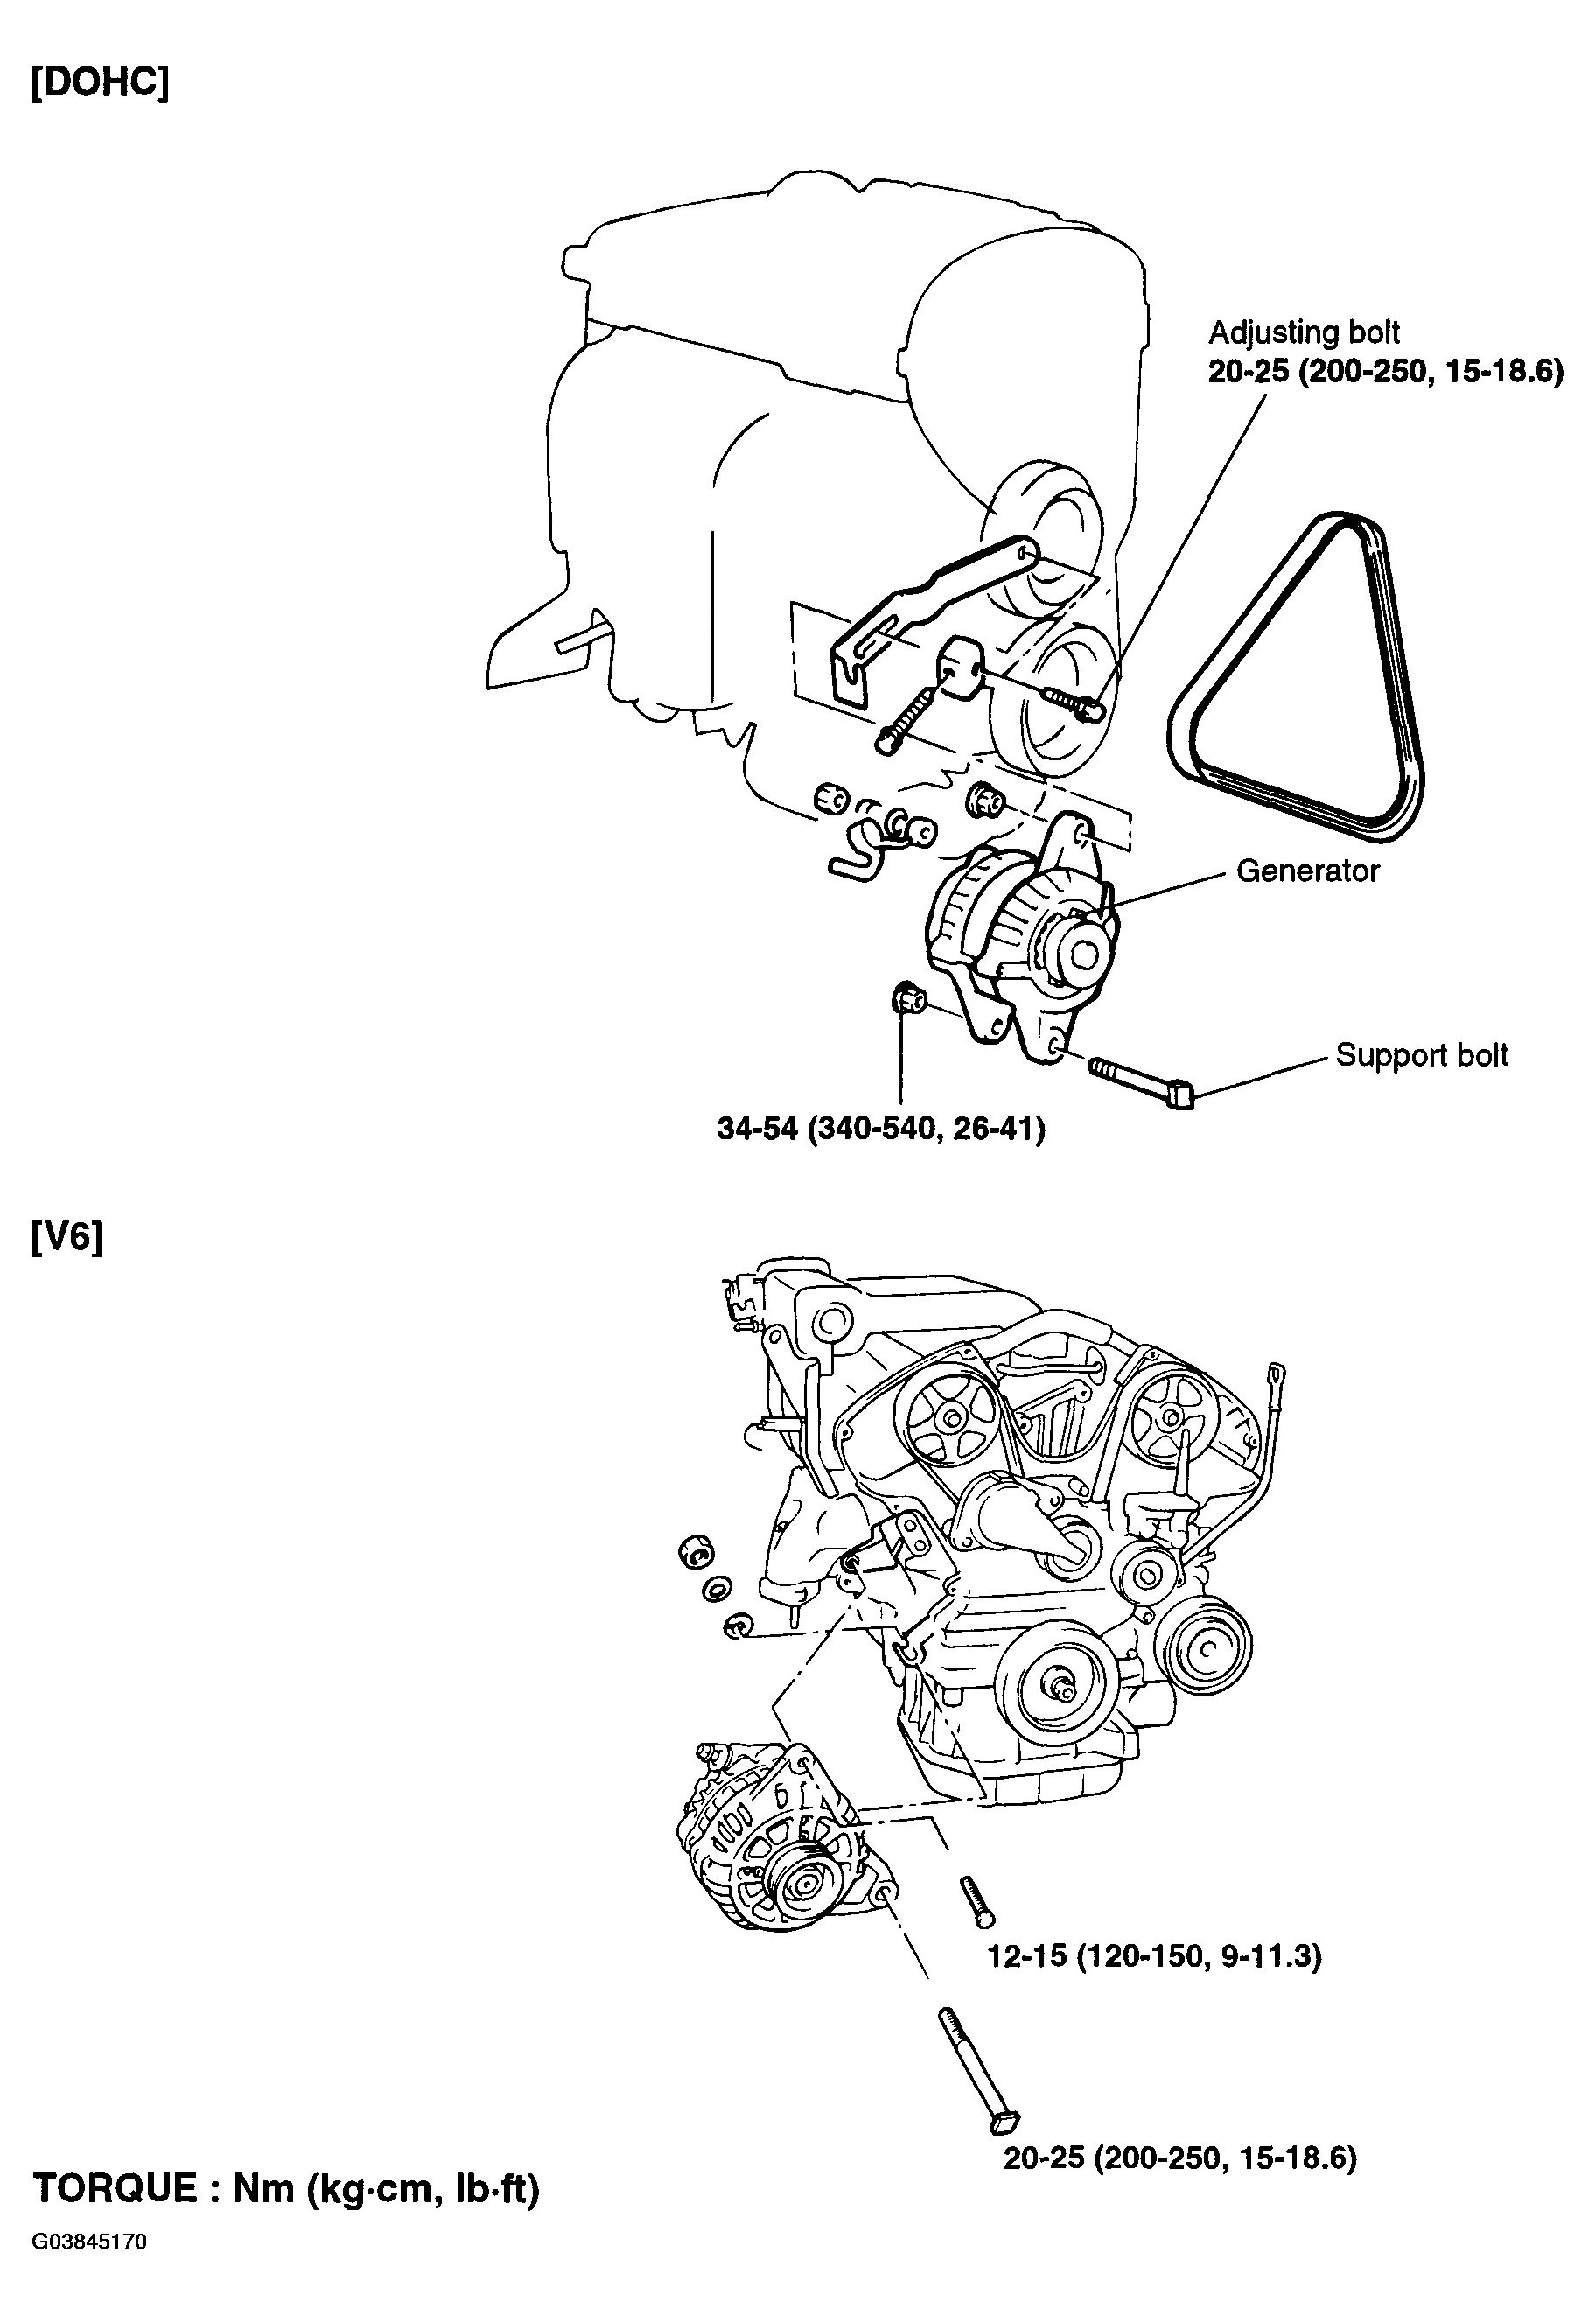 2005 Hyundai Santa Fe Alternator: Trying to Remove the